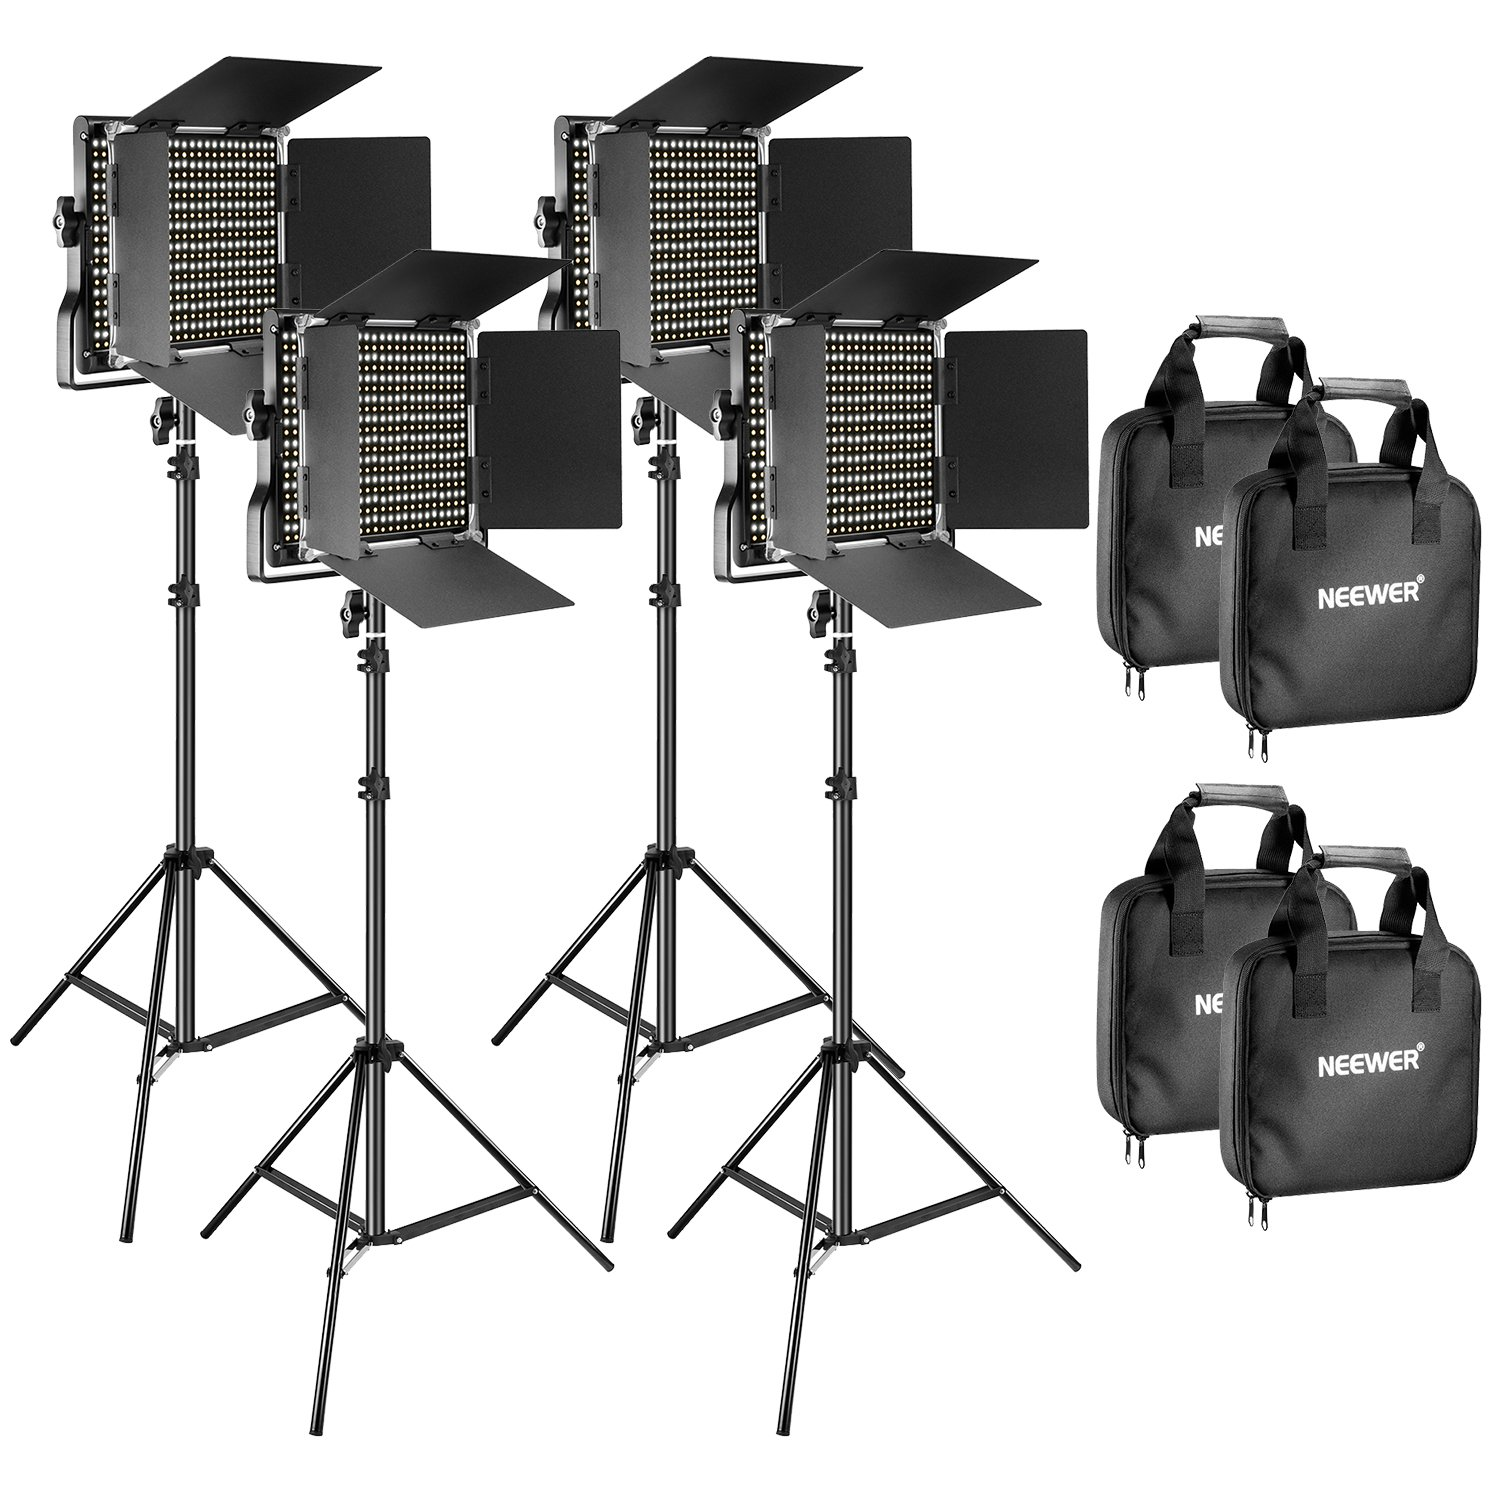 Neewer 4 Pieces Bi-Color 660 LED Video Light and Stand Kit Includes: 3200-5600K CRI 96+ Dimmable Light with U Bracket and Barndoor and 75 inches Light Stand for Studio Photography, Video Shooting by Neewer (Image #1)